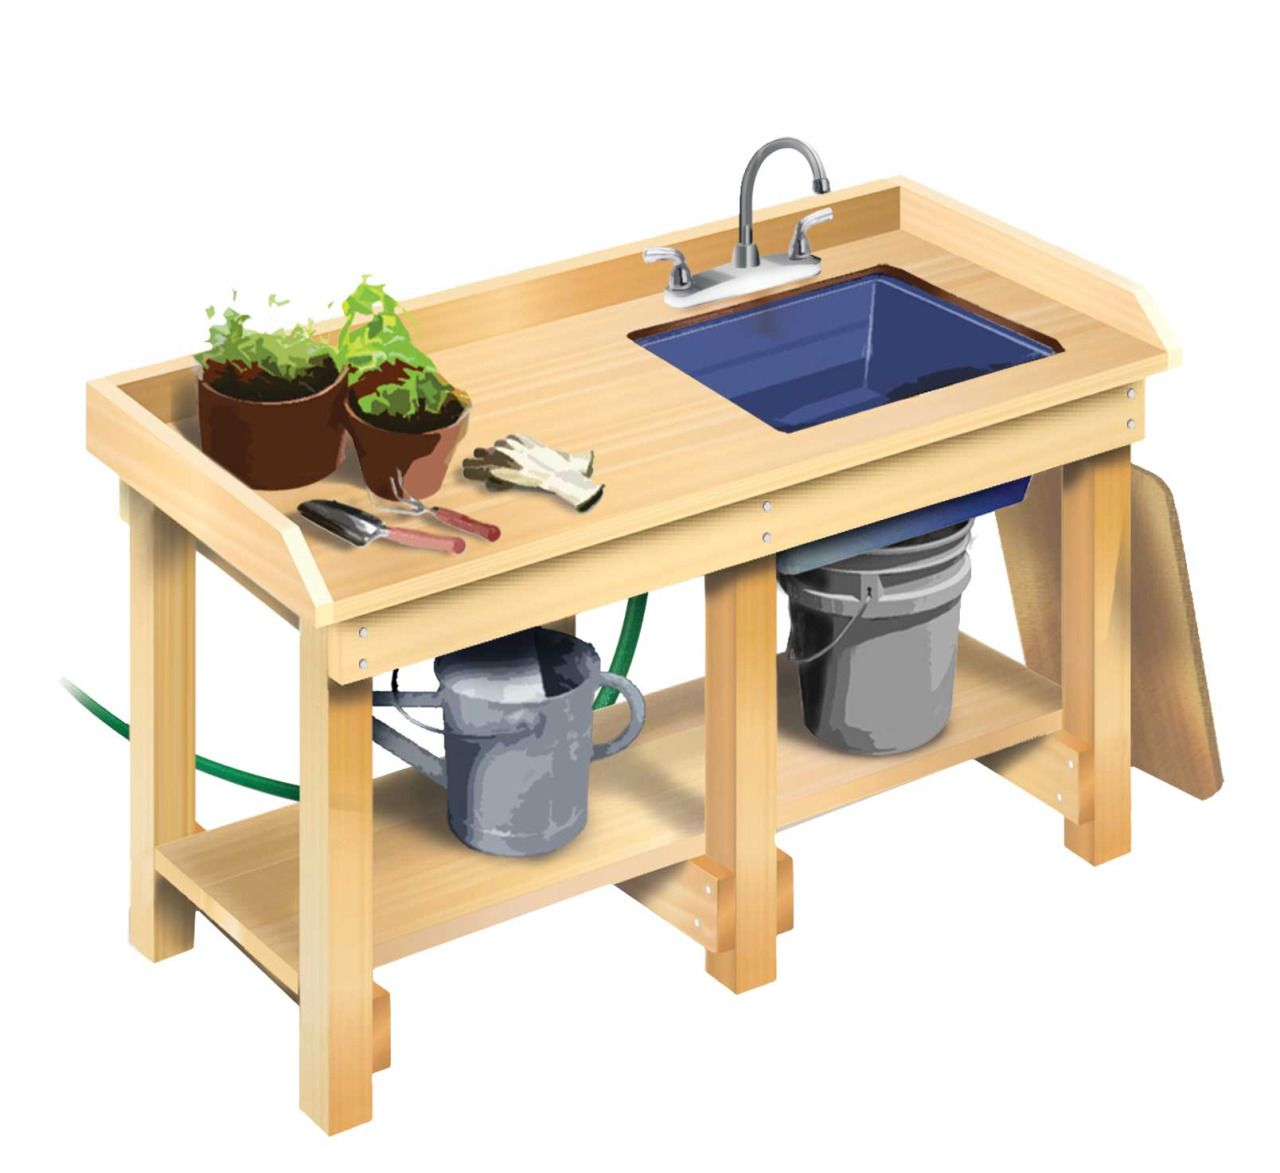 How To Build A Workbench Our Diy Workbench Plans Create A Sturdy